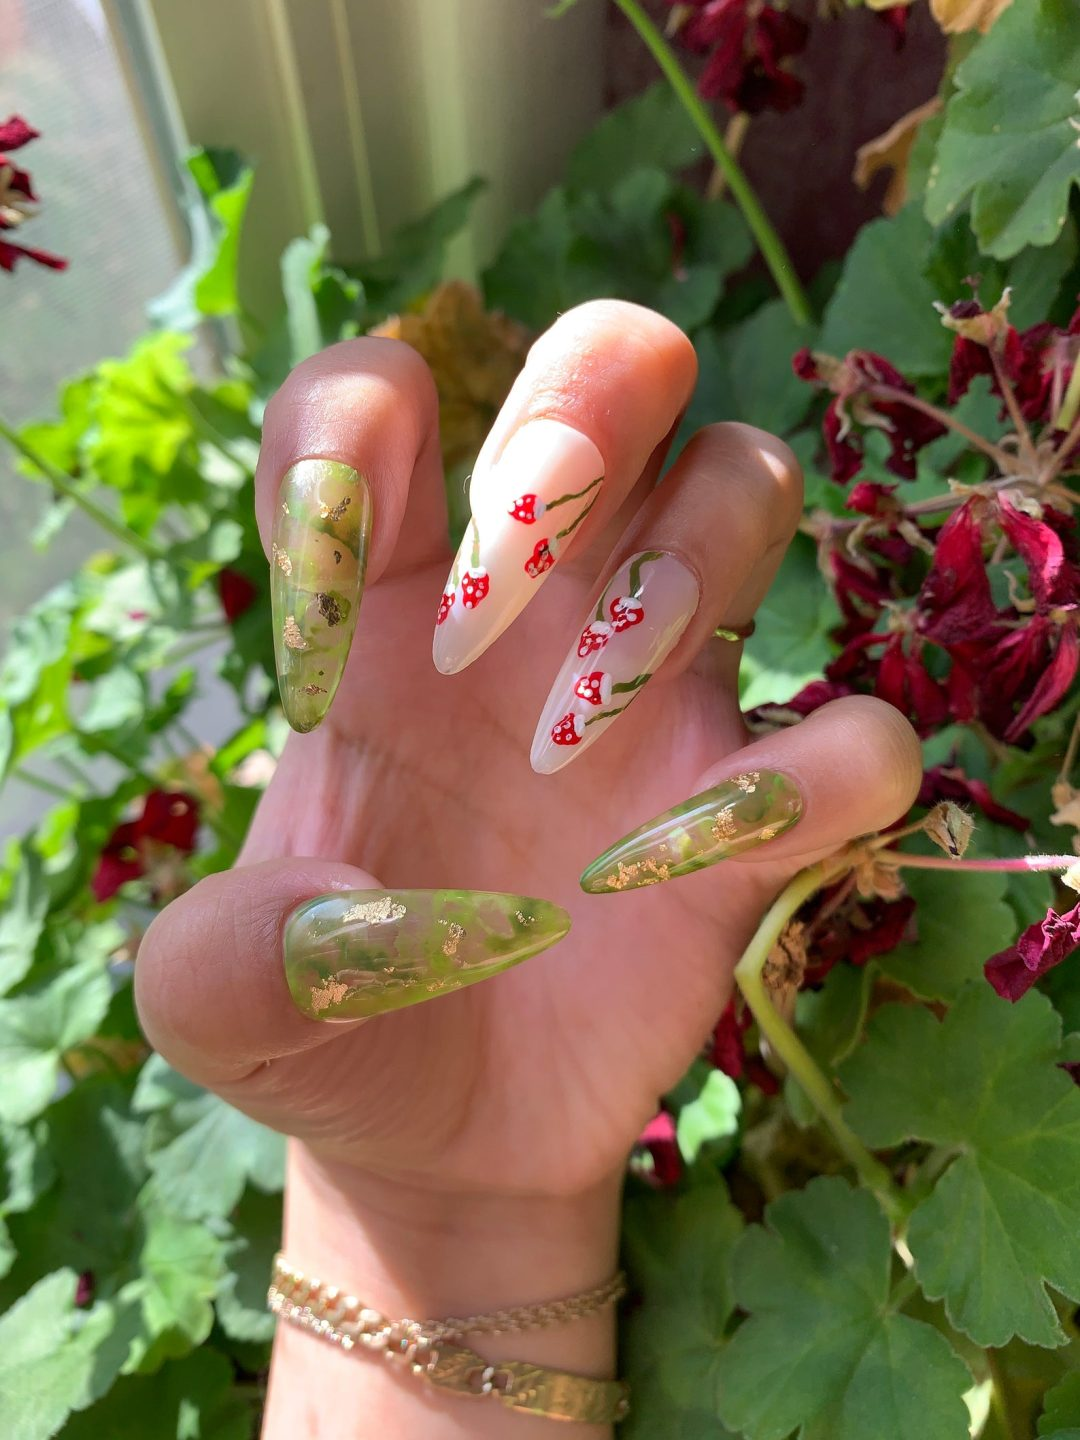 Mint green marble nails with mushrooms